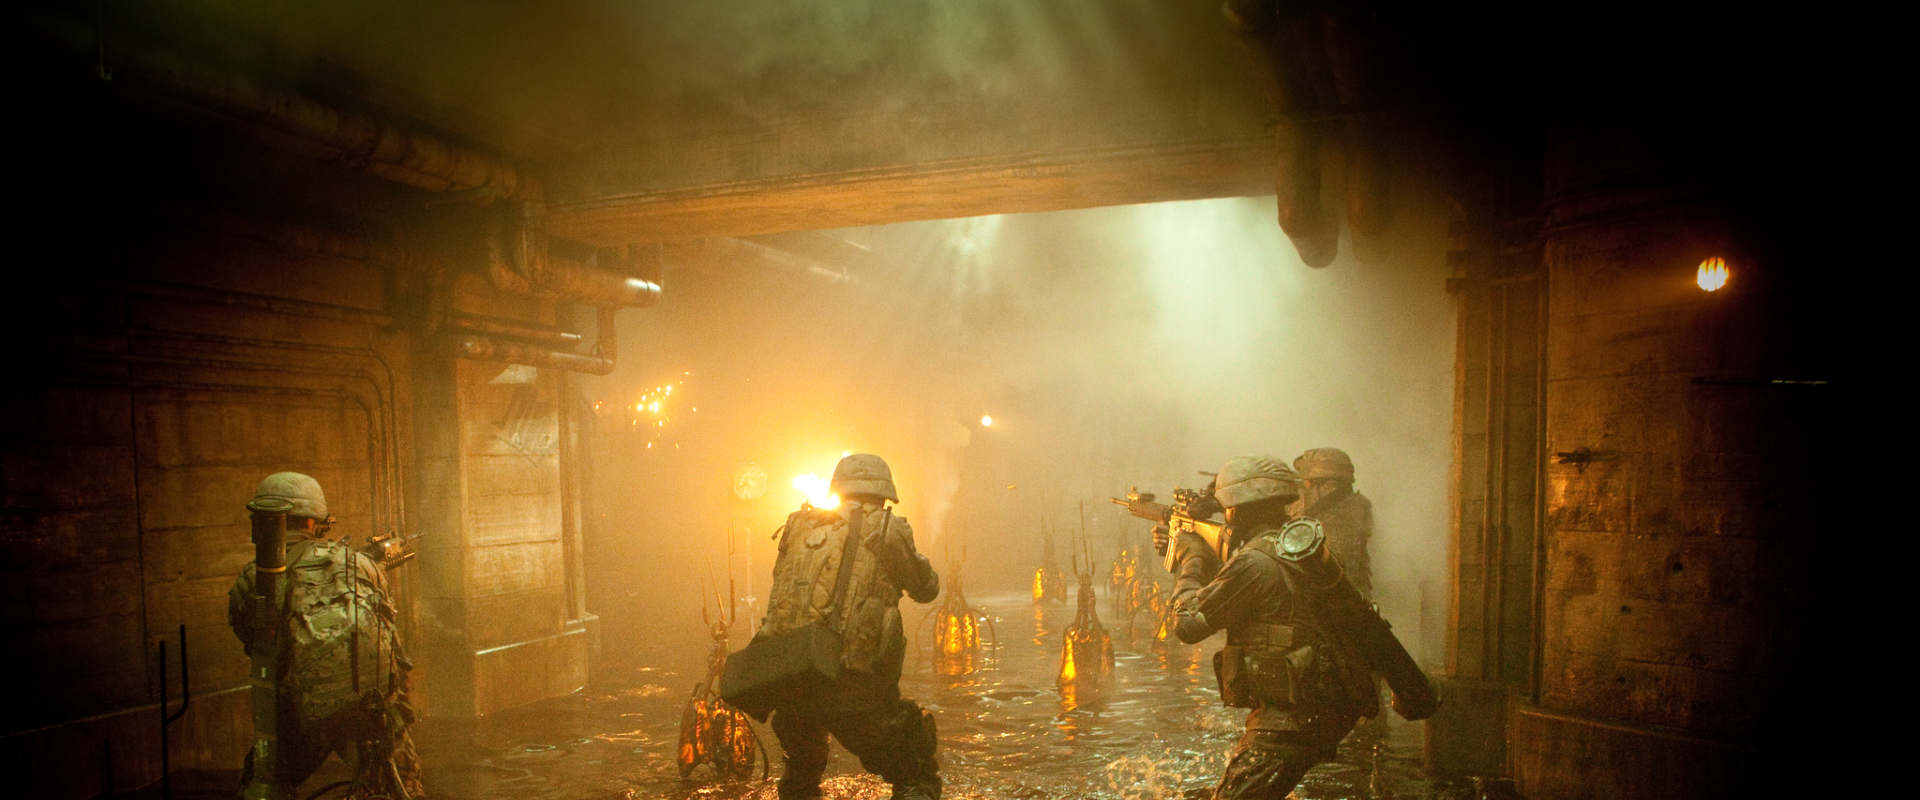 Battle Los Angeles background 1